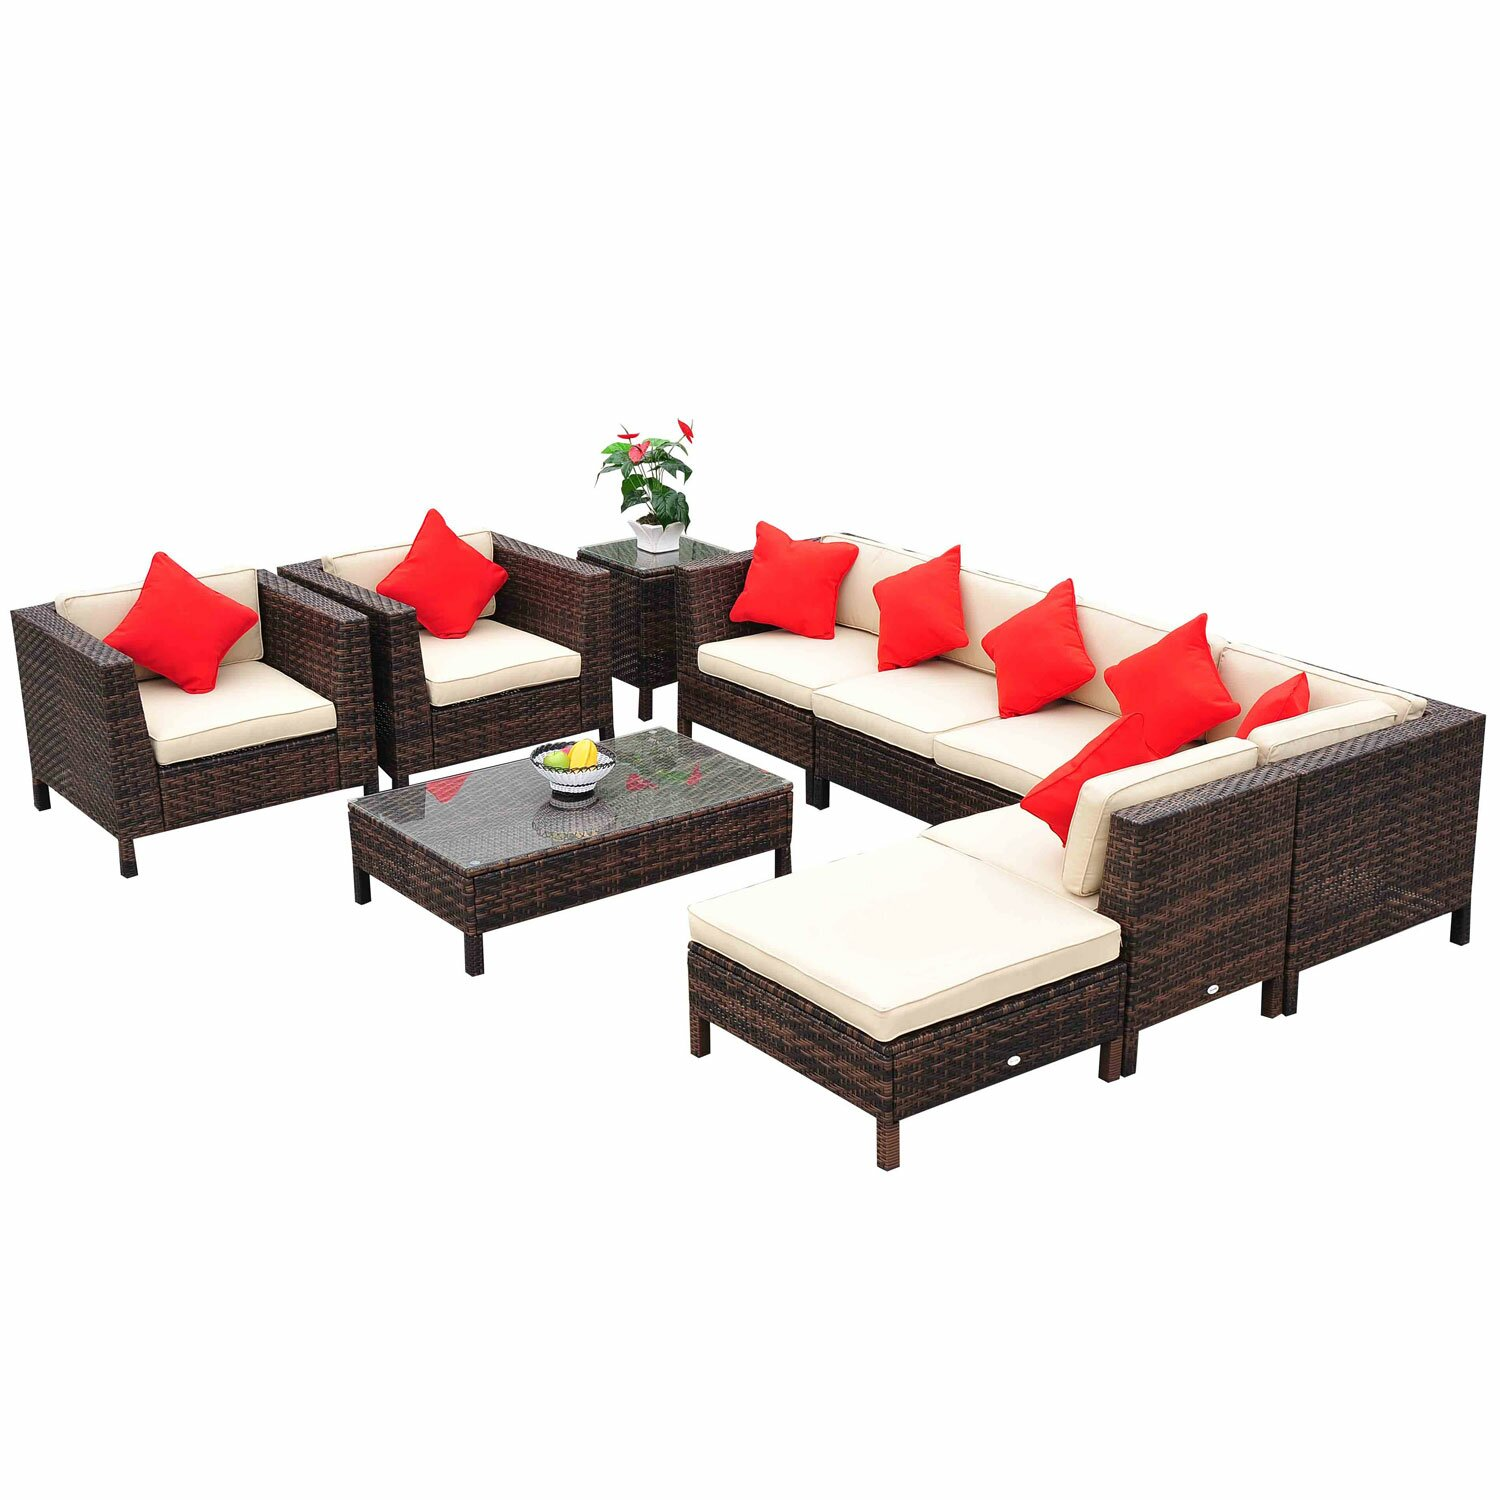 outsunny 9 piece lounge seating group with cushions reviews wayfair. Black Bedroom Furniture Sets. Home Design Ideas